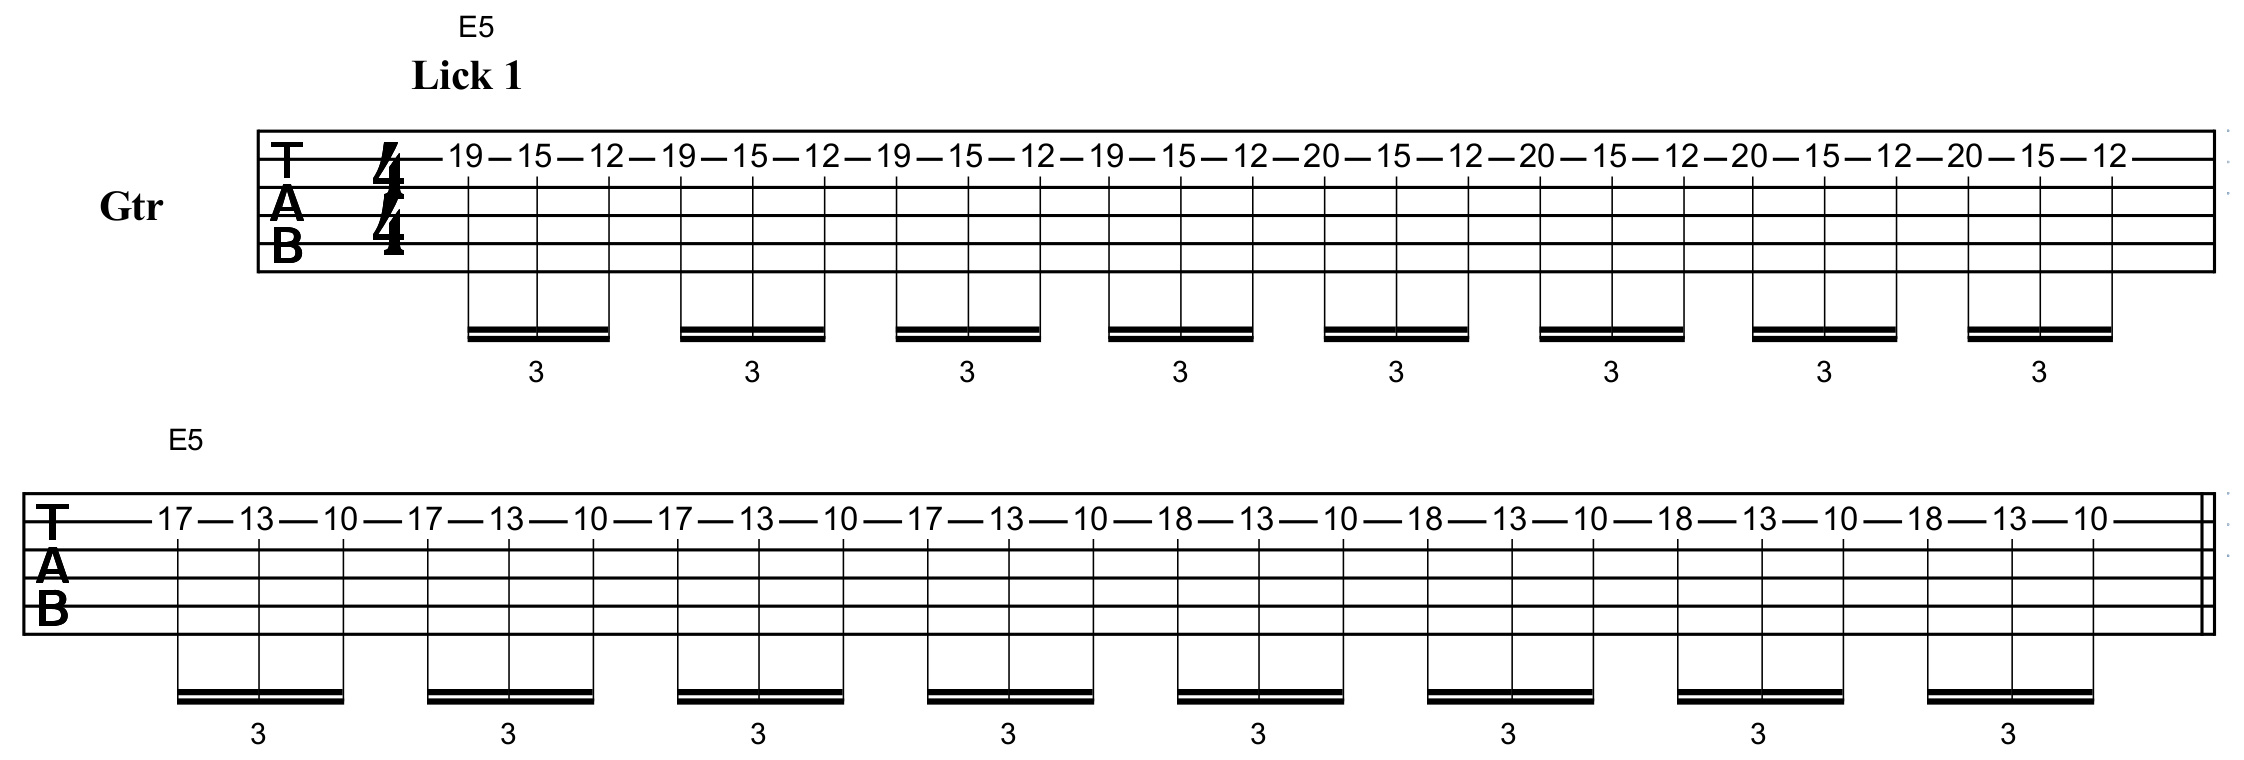 tapping lick in the style of Kirk Hammett's playing on the song One